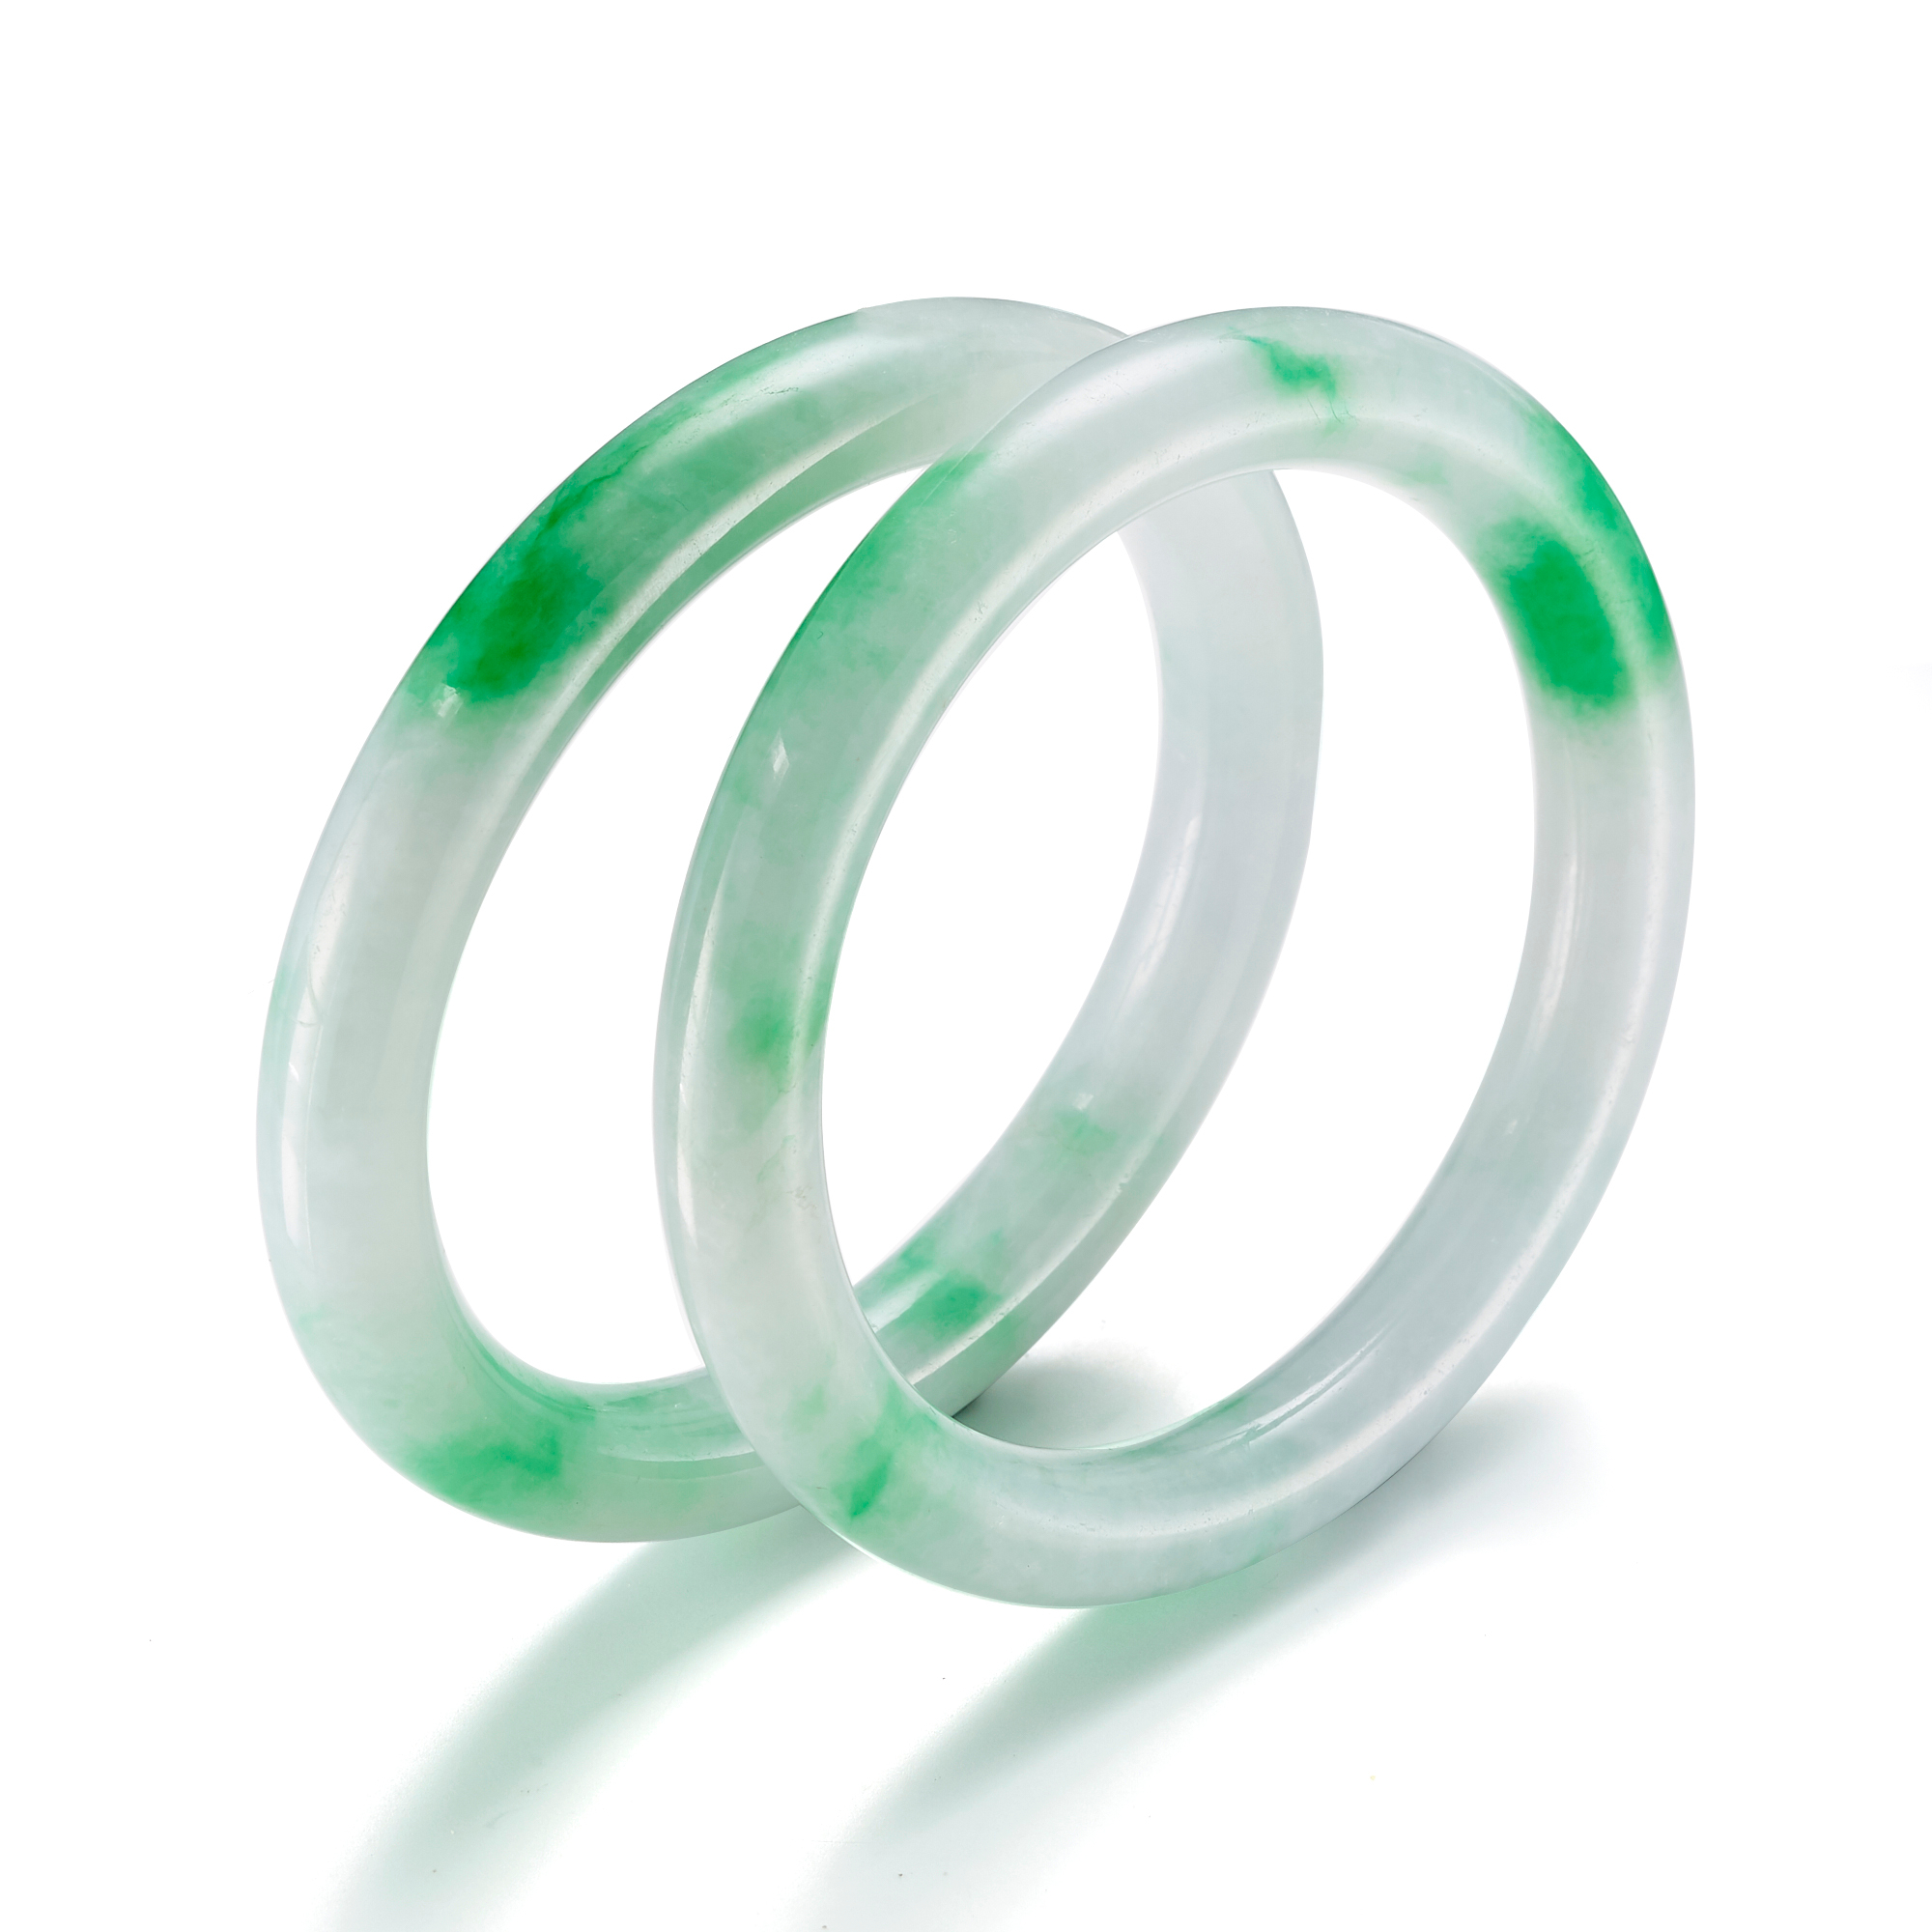 Estate Pair of Translucent White & Bright Apple Green Jadeite Bangles